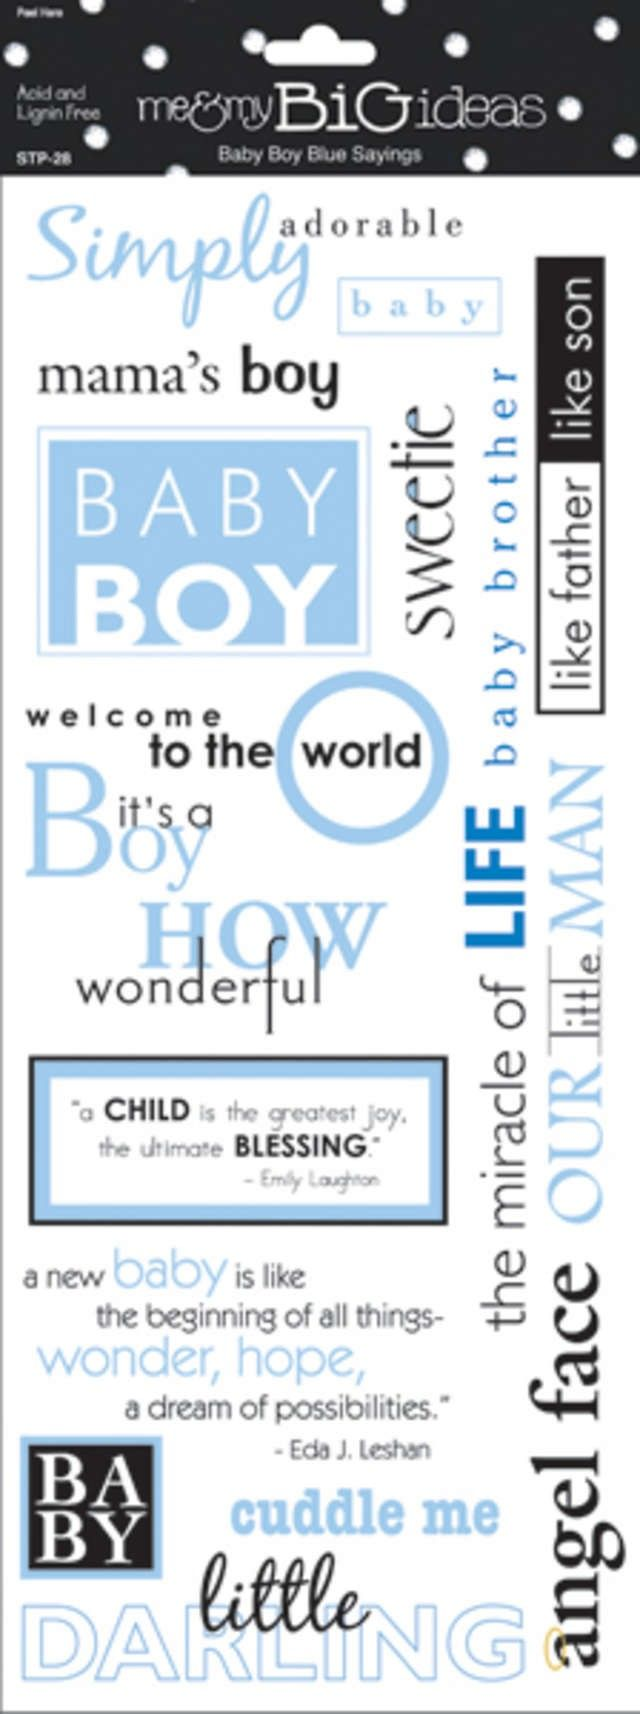 Baby scrapbook ideas quotes - Quotes About Baby Boys Baby Boy Sayings Stickers 5 5 X12 Sheet Stp 28 What To Write In A Card Pinterest Boys Babies And Quotes About